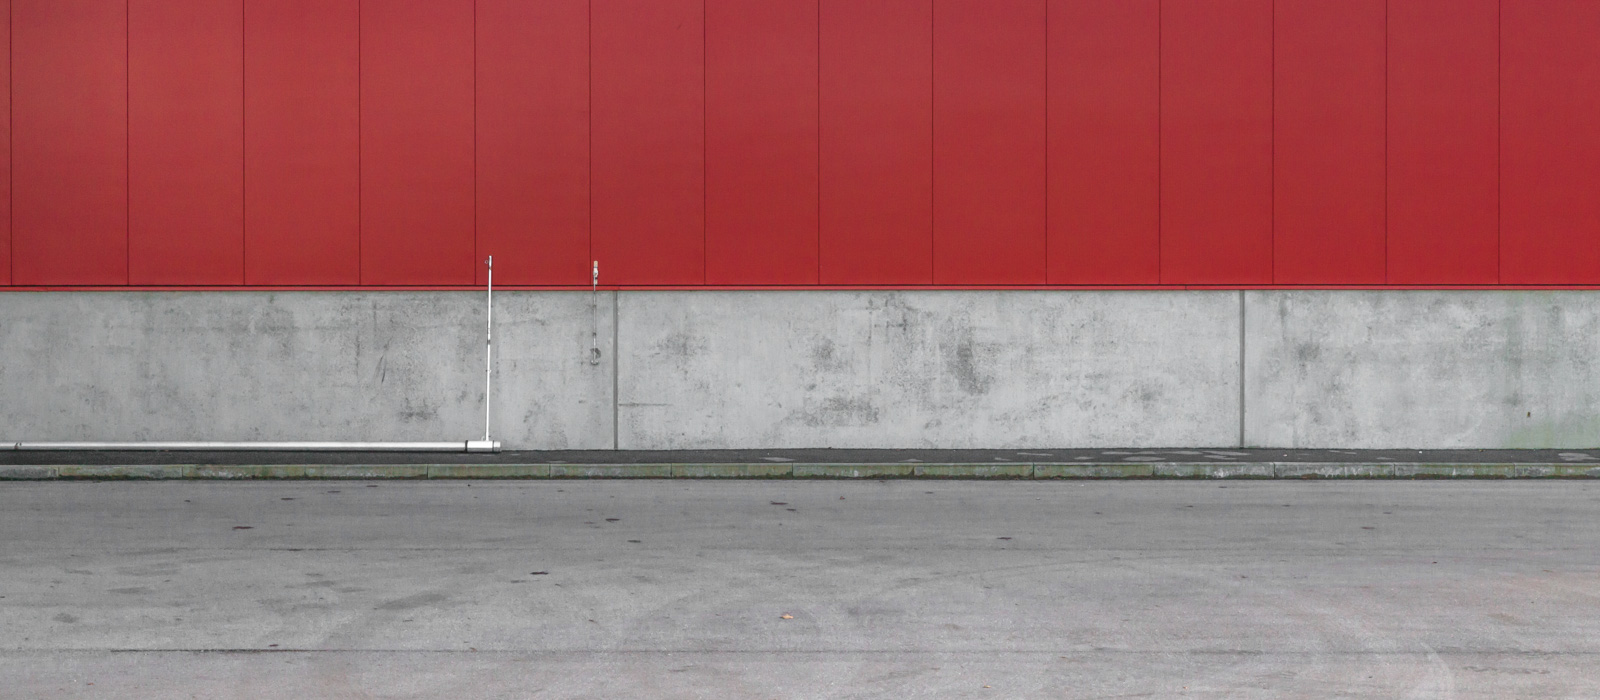 minimalistic horizontal image, seeming two-dimensional, showing a red steel wall with a concrete socket, a pedestrians walk and a street